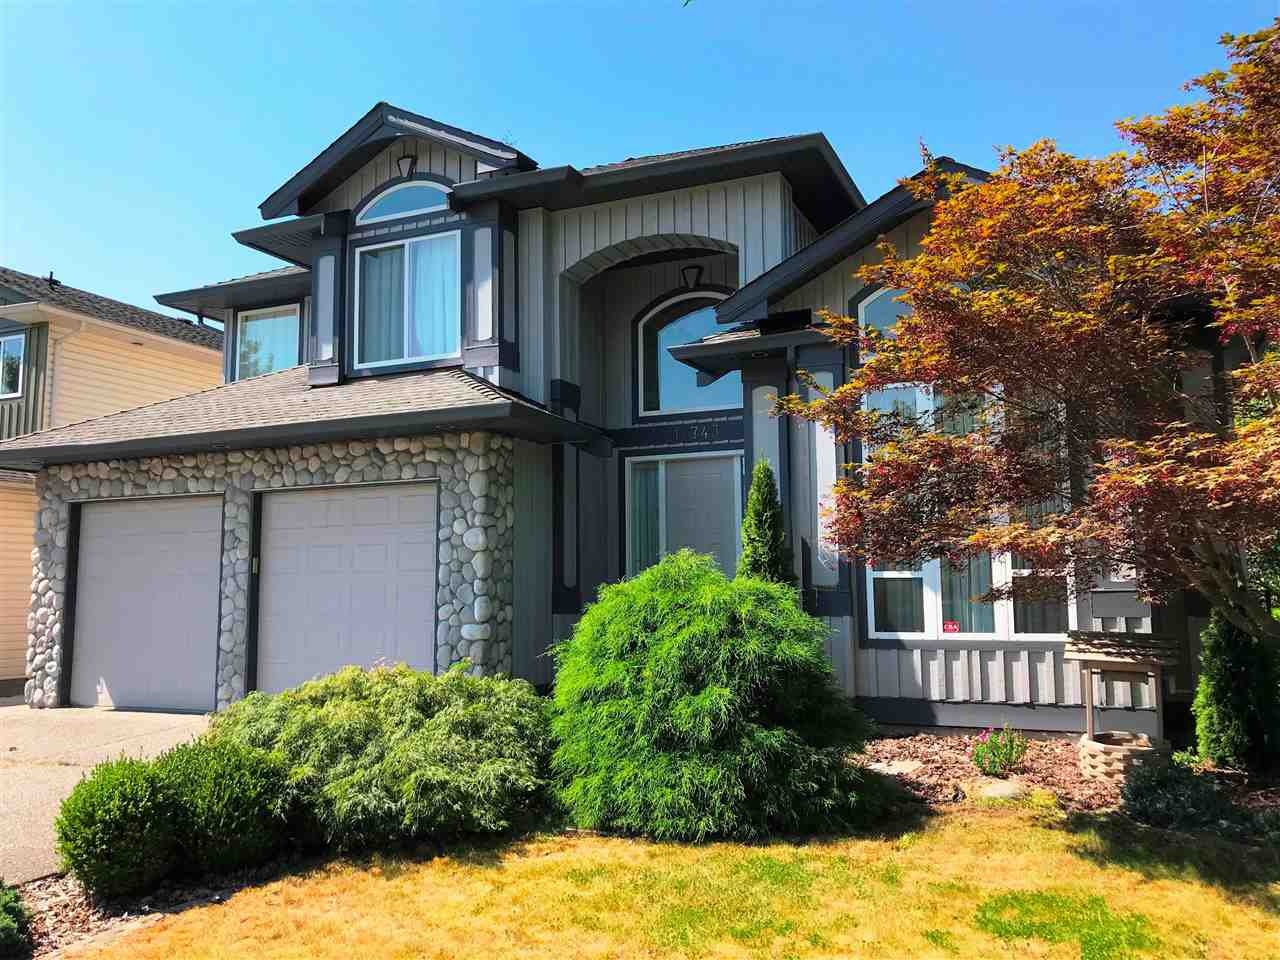 Main Photo: 11743 CREEKSIDE Street in Maple Ridge: Cottonwood MR House for sale : MLS®# R2375049